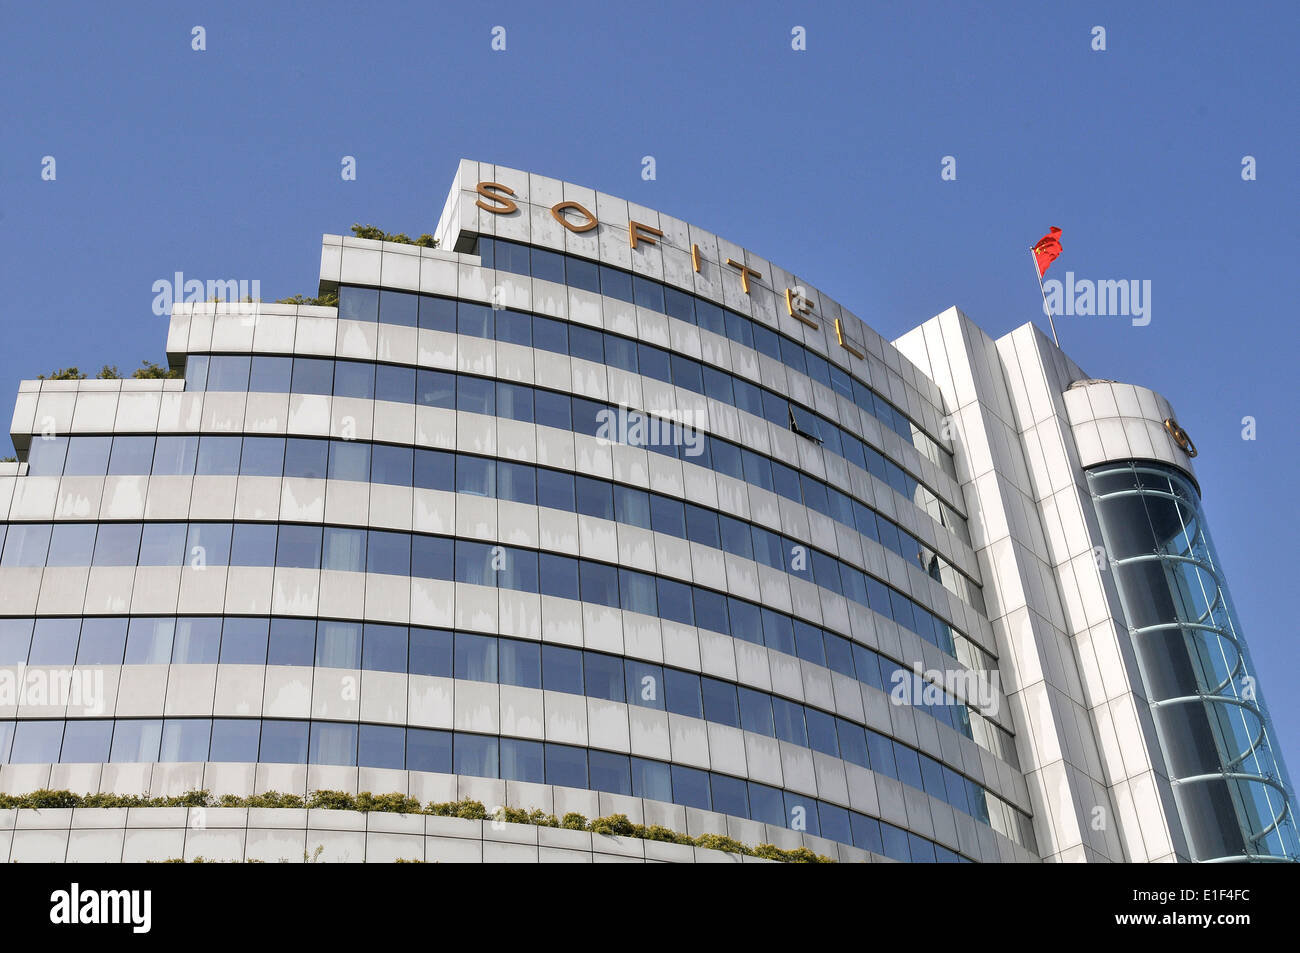 hotel Sofitel on Remain square Xi'an China - Stock Image